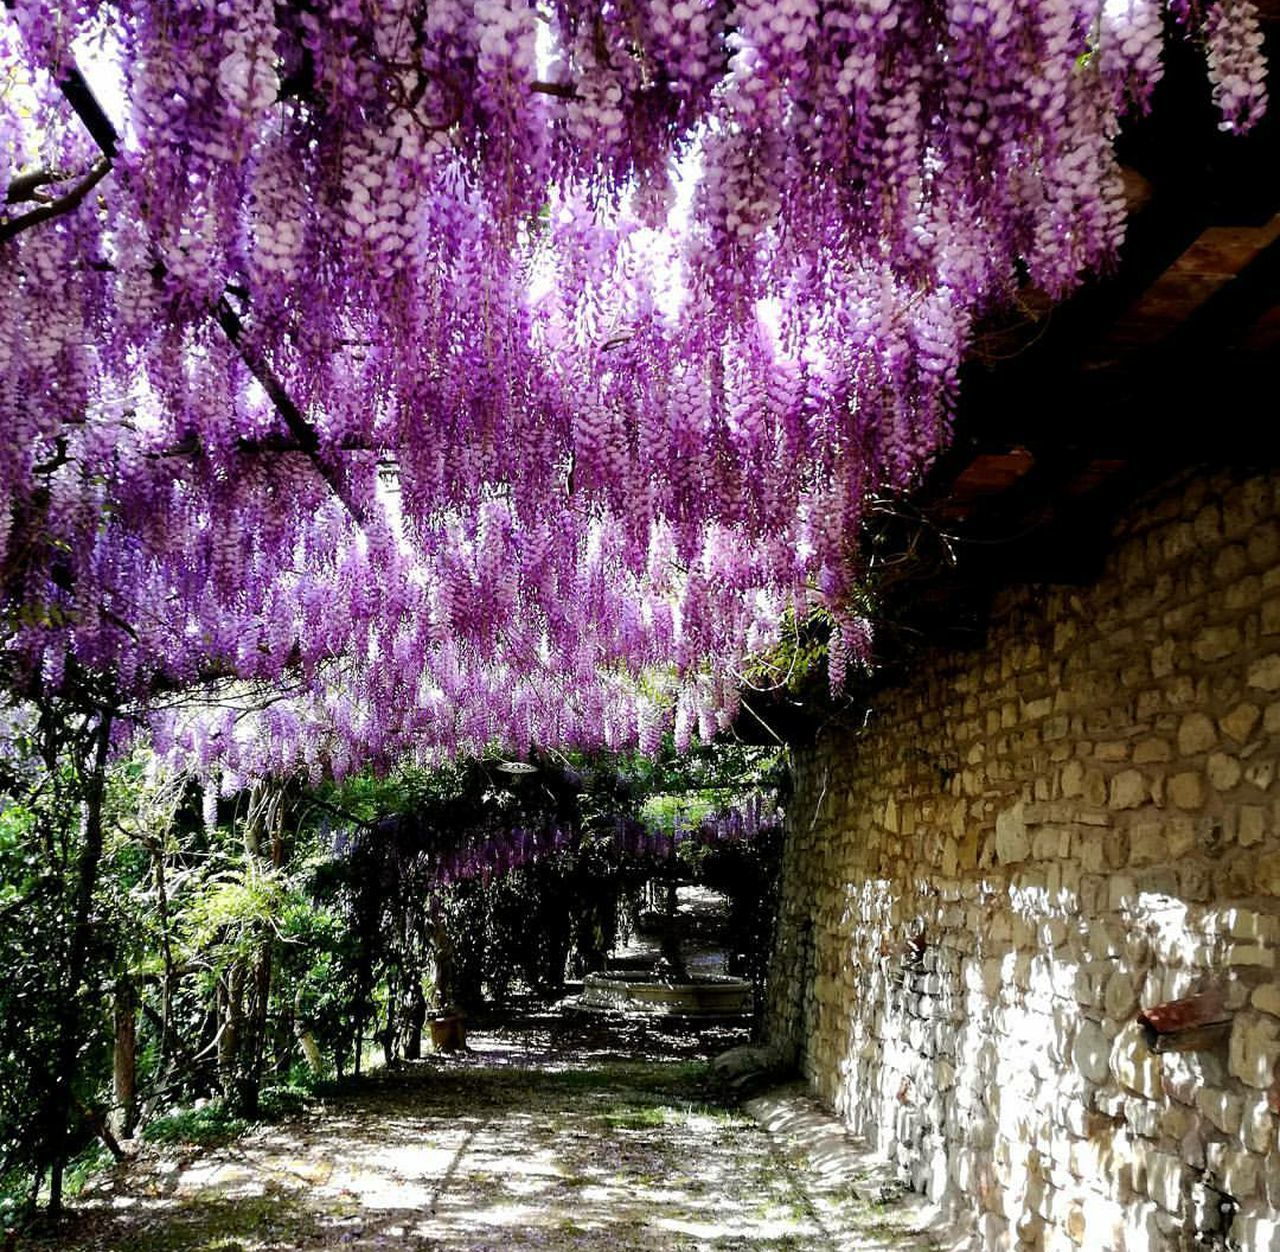 Nature Beauty In Nature Flower Day Outdoors Italy Fiori Glicineinfiore Glicine Growth